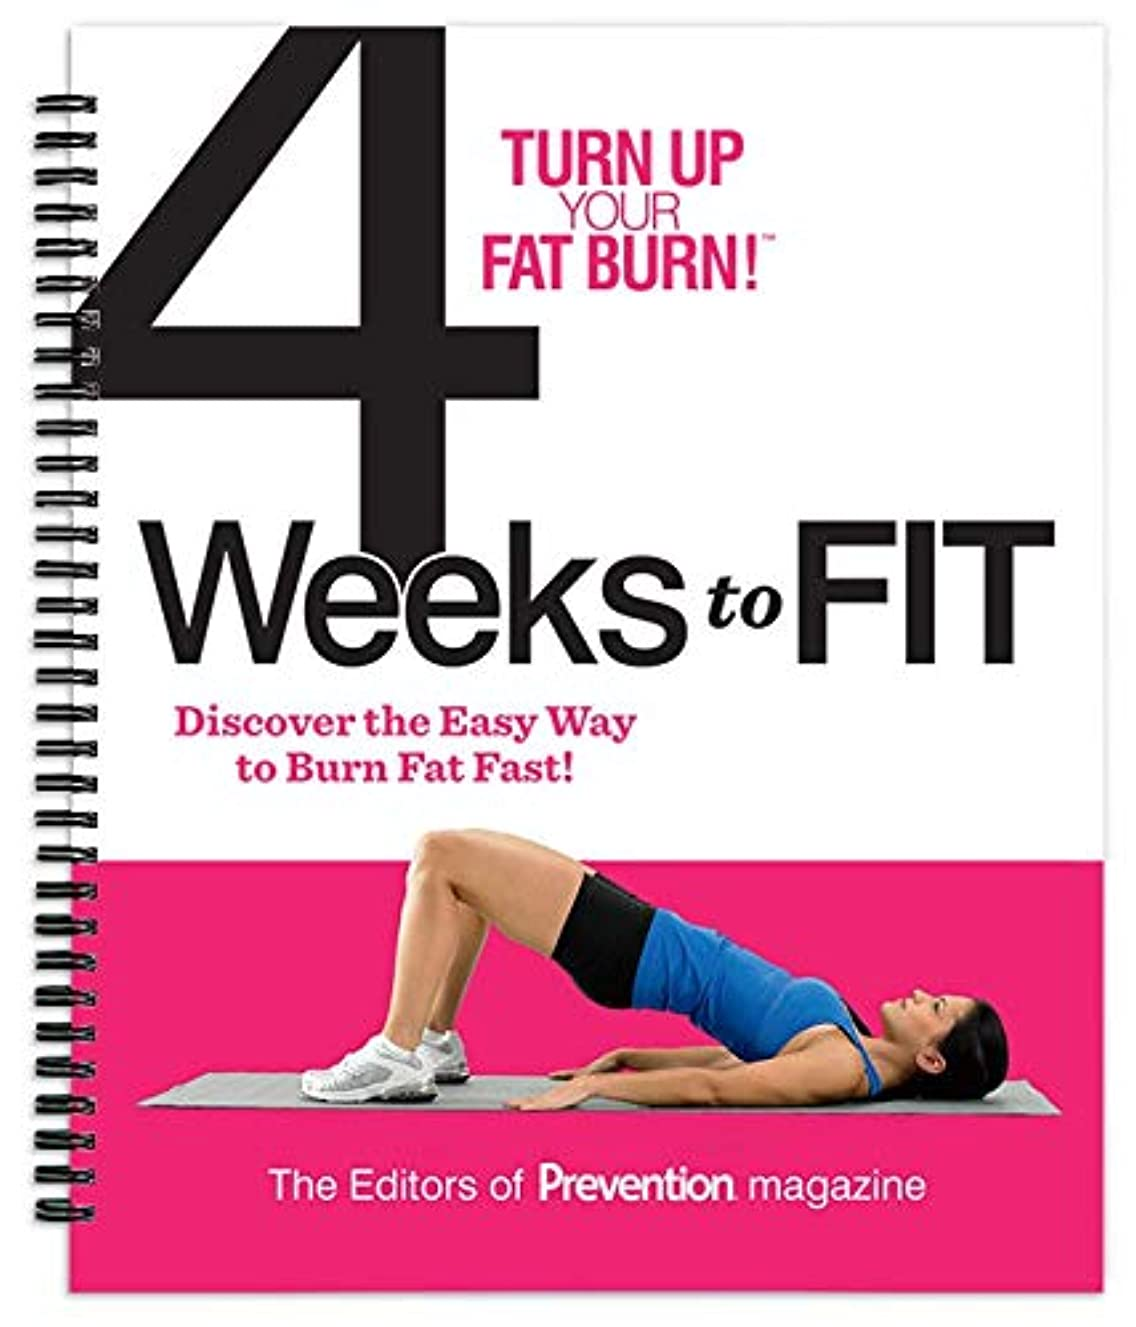 Turn Up Your Fat Burn! 4 Weeks To Fit: Discover the Easy Way to Burn Fat Fast